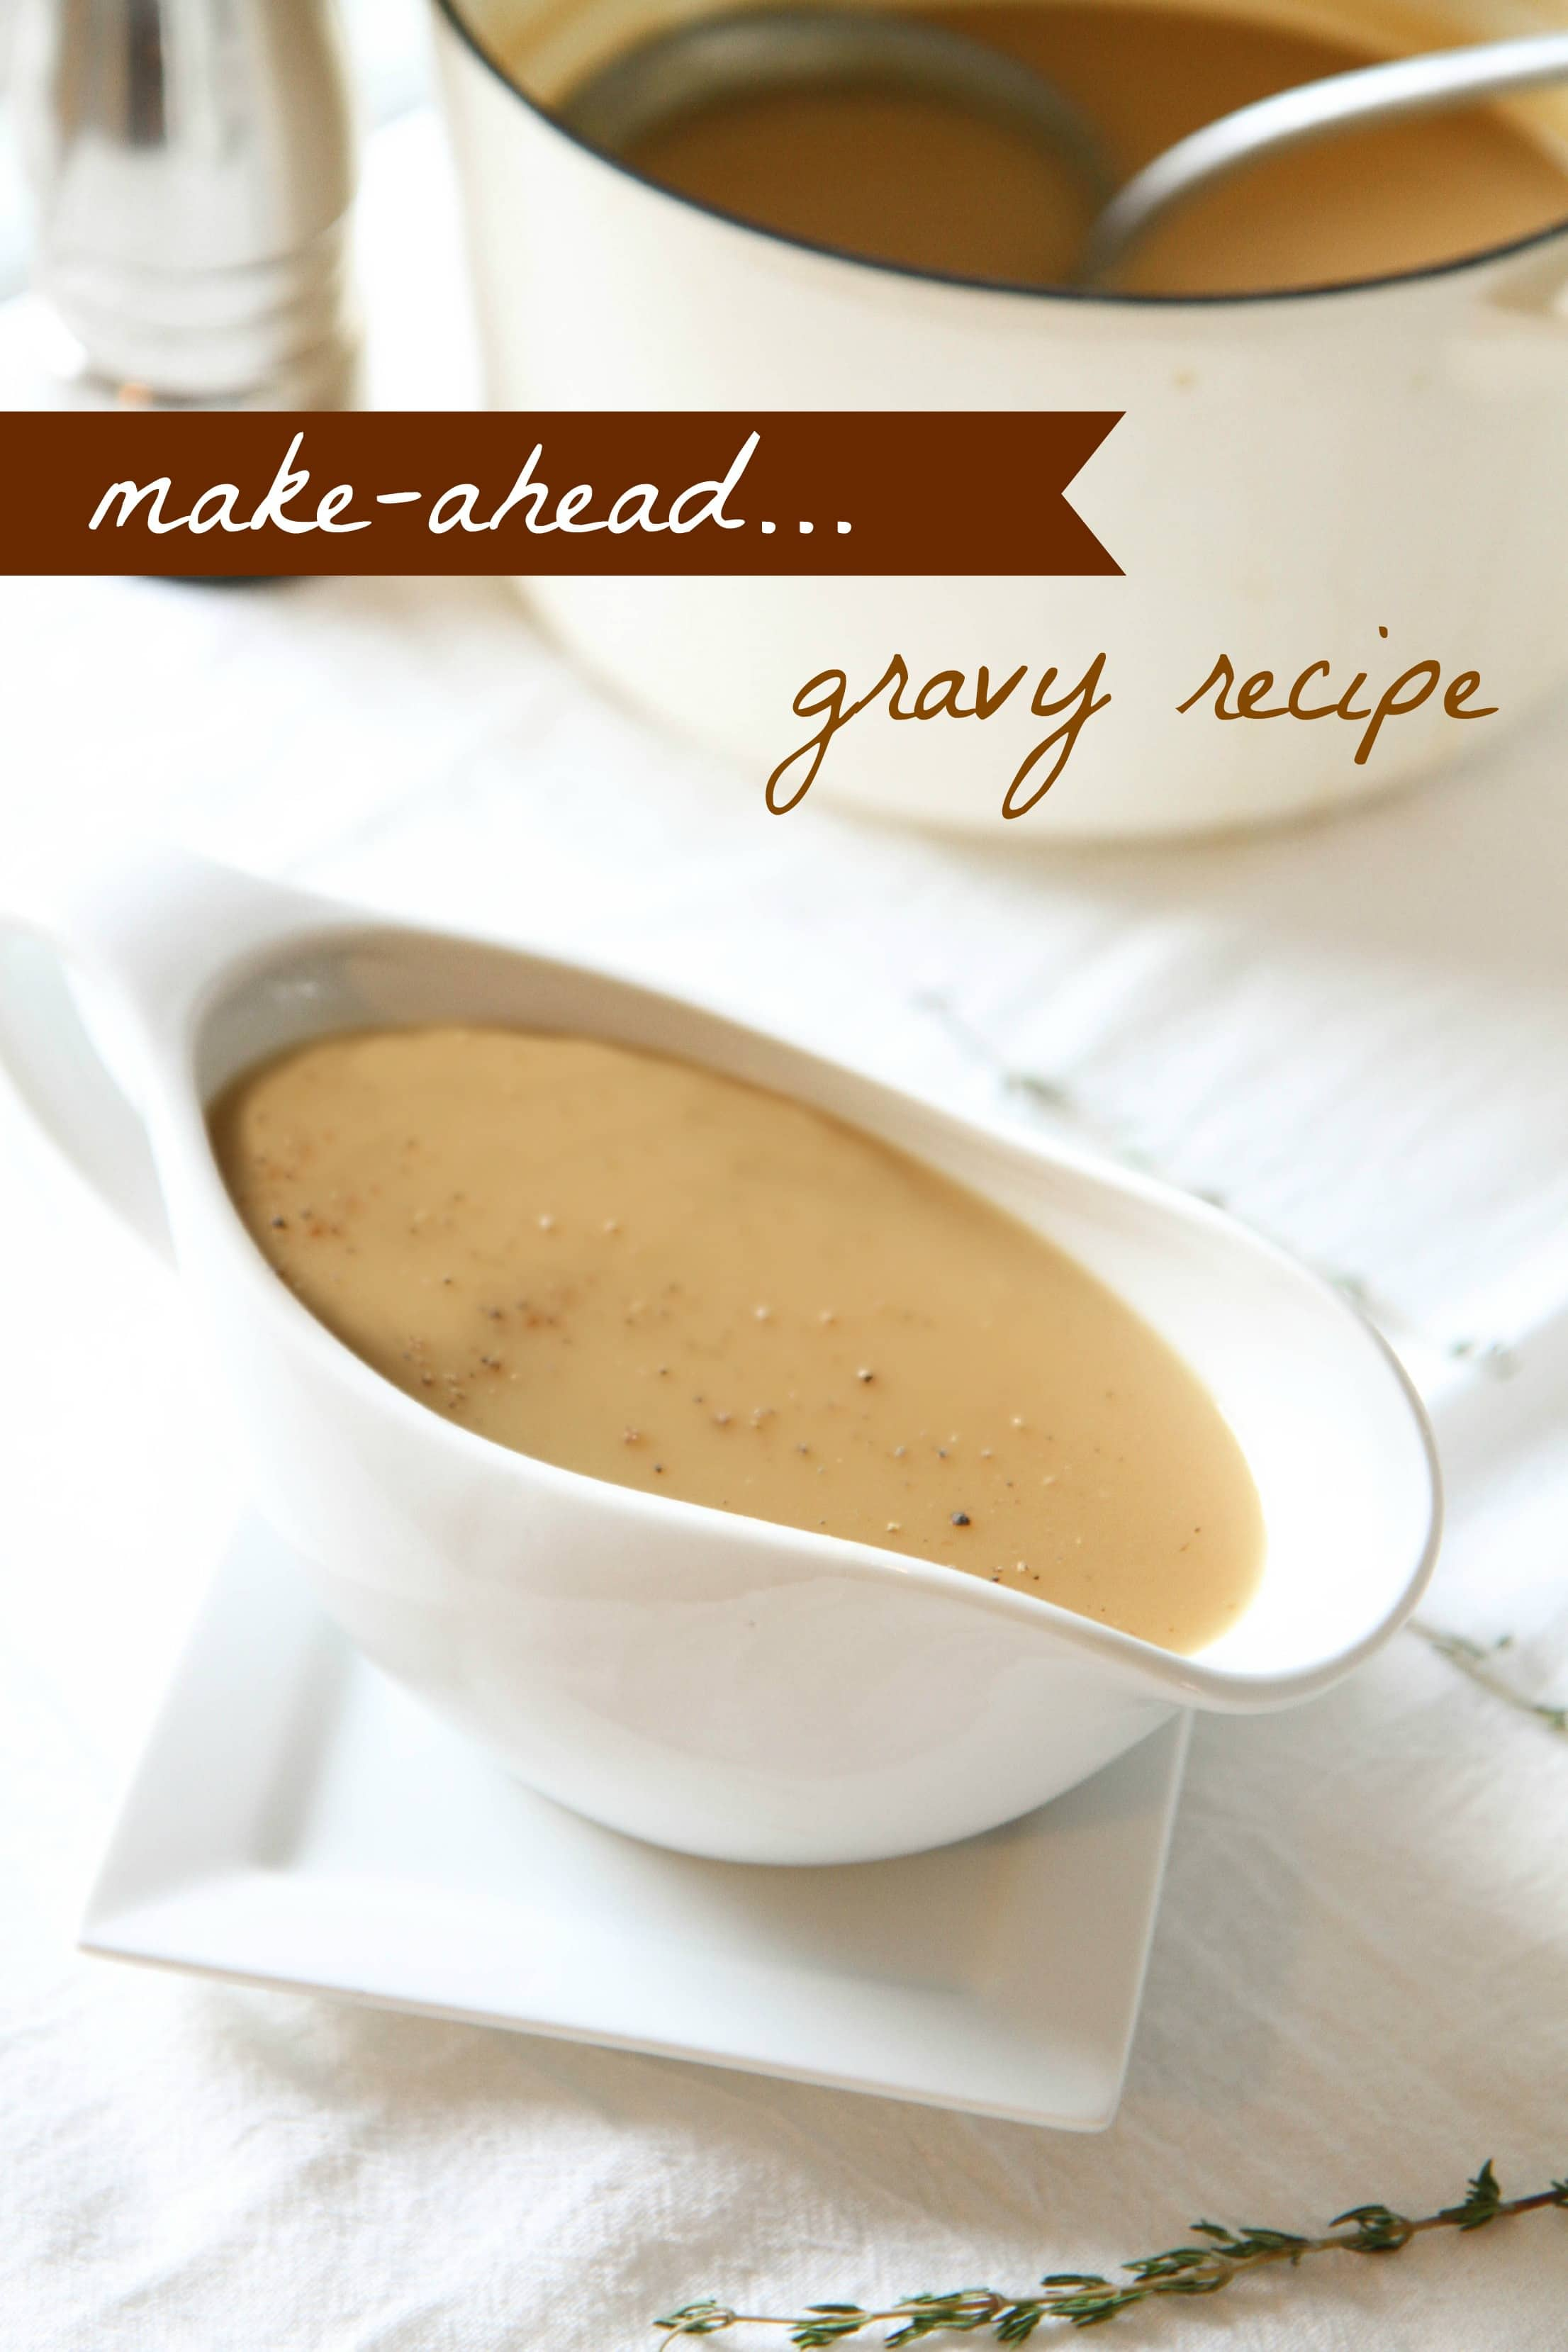 Make-Ahead Gravy Recipe from MomAdvice.com.